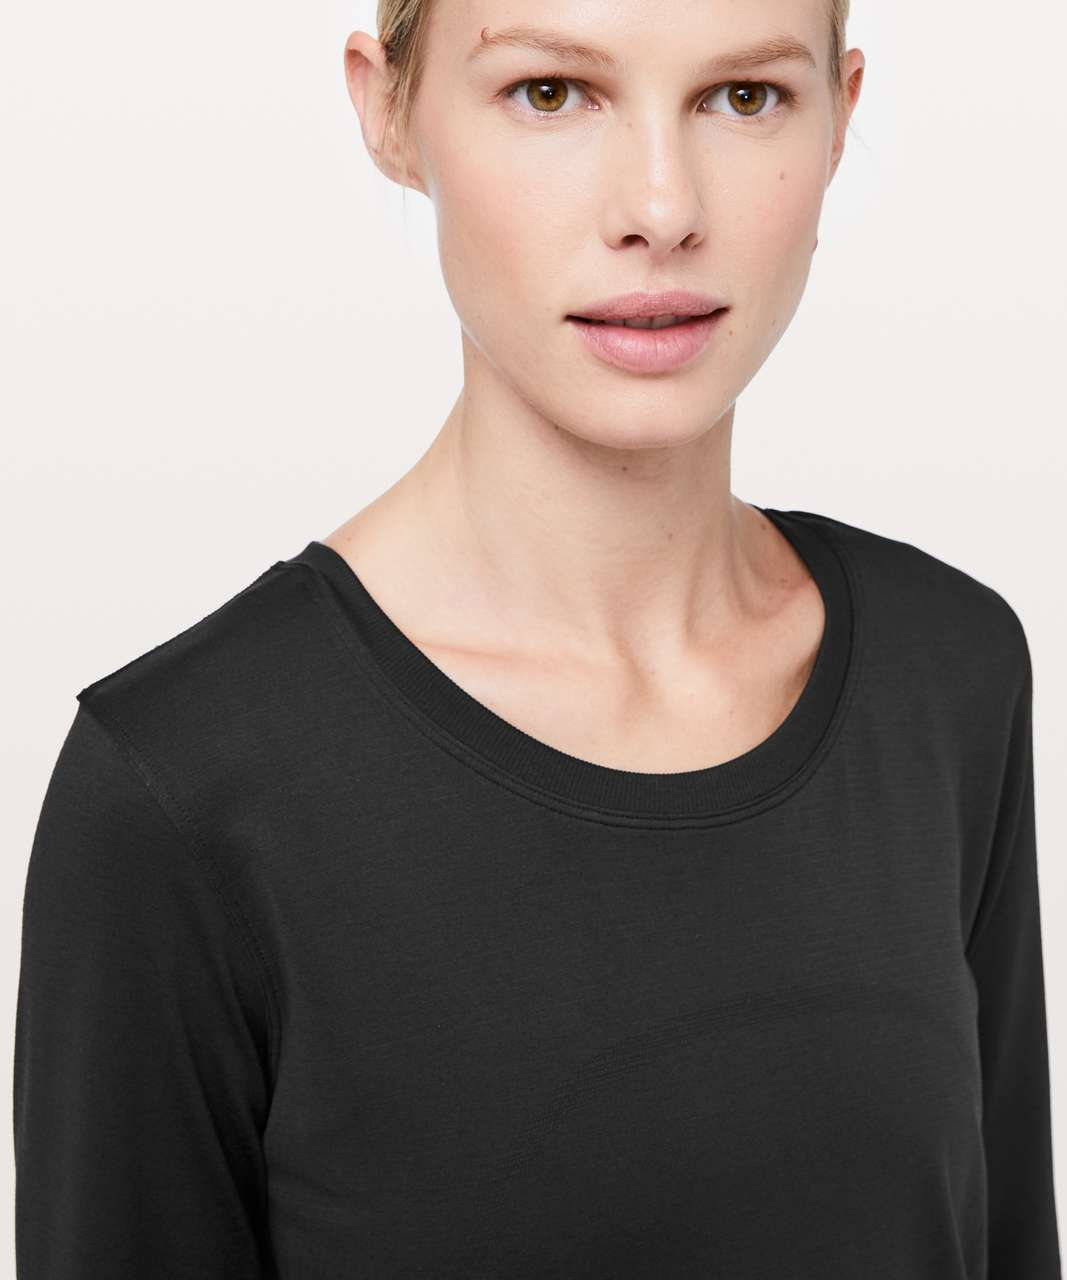 Lululemon Swiftly Tech Long Sleeve (Breeze) *Relaxed Fit - Black / Black (Second Release)